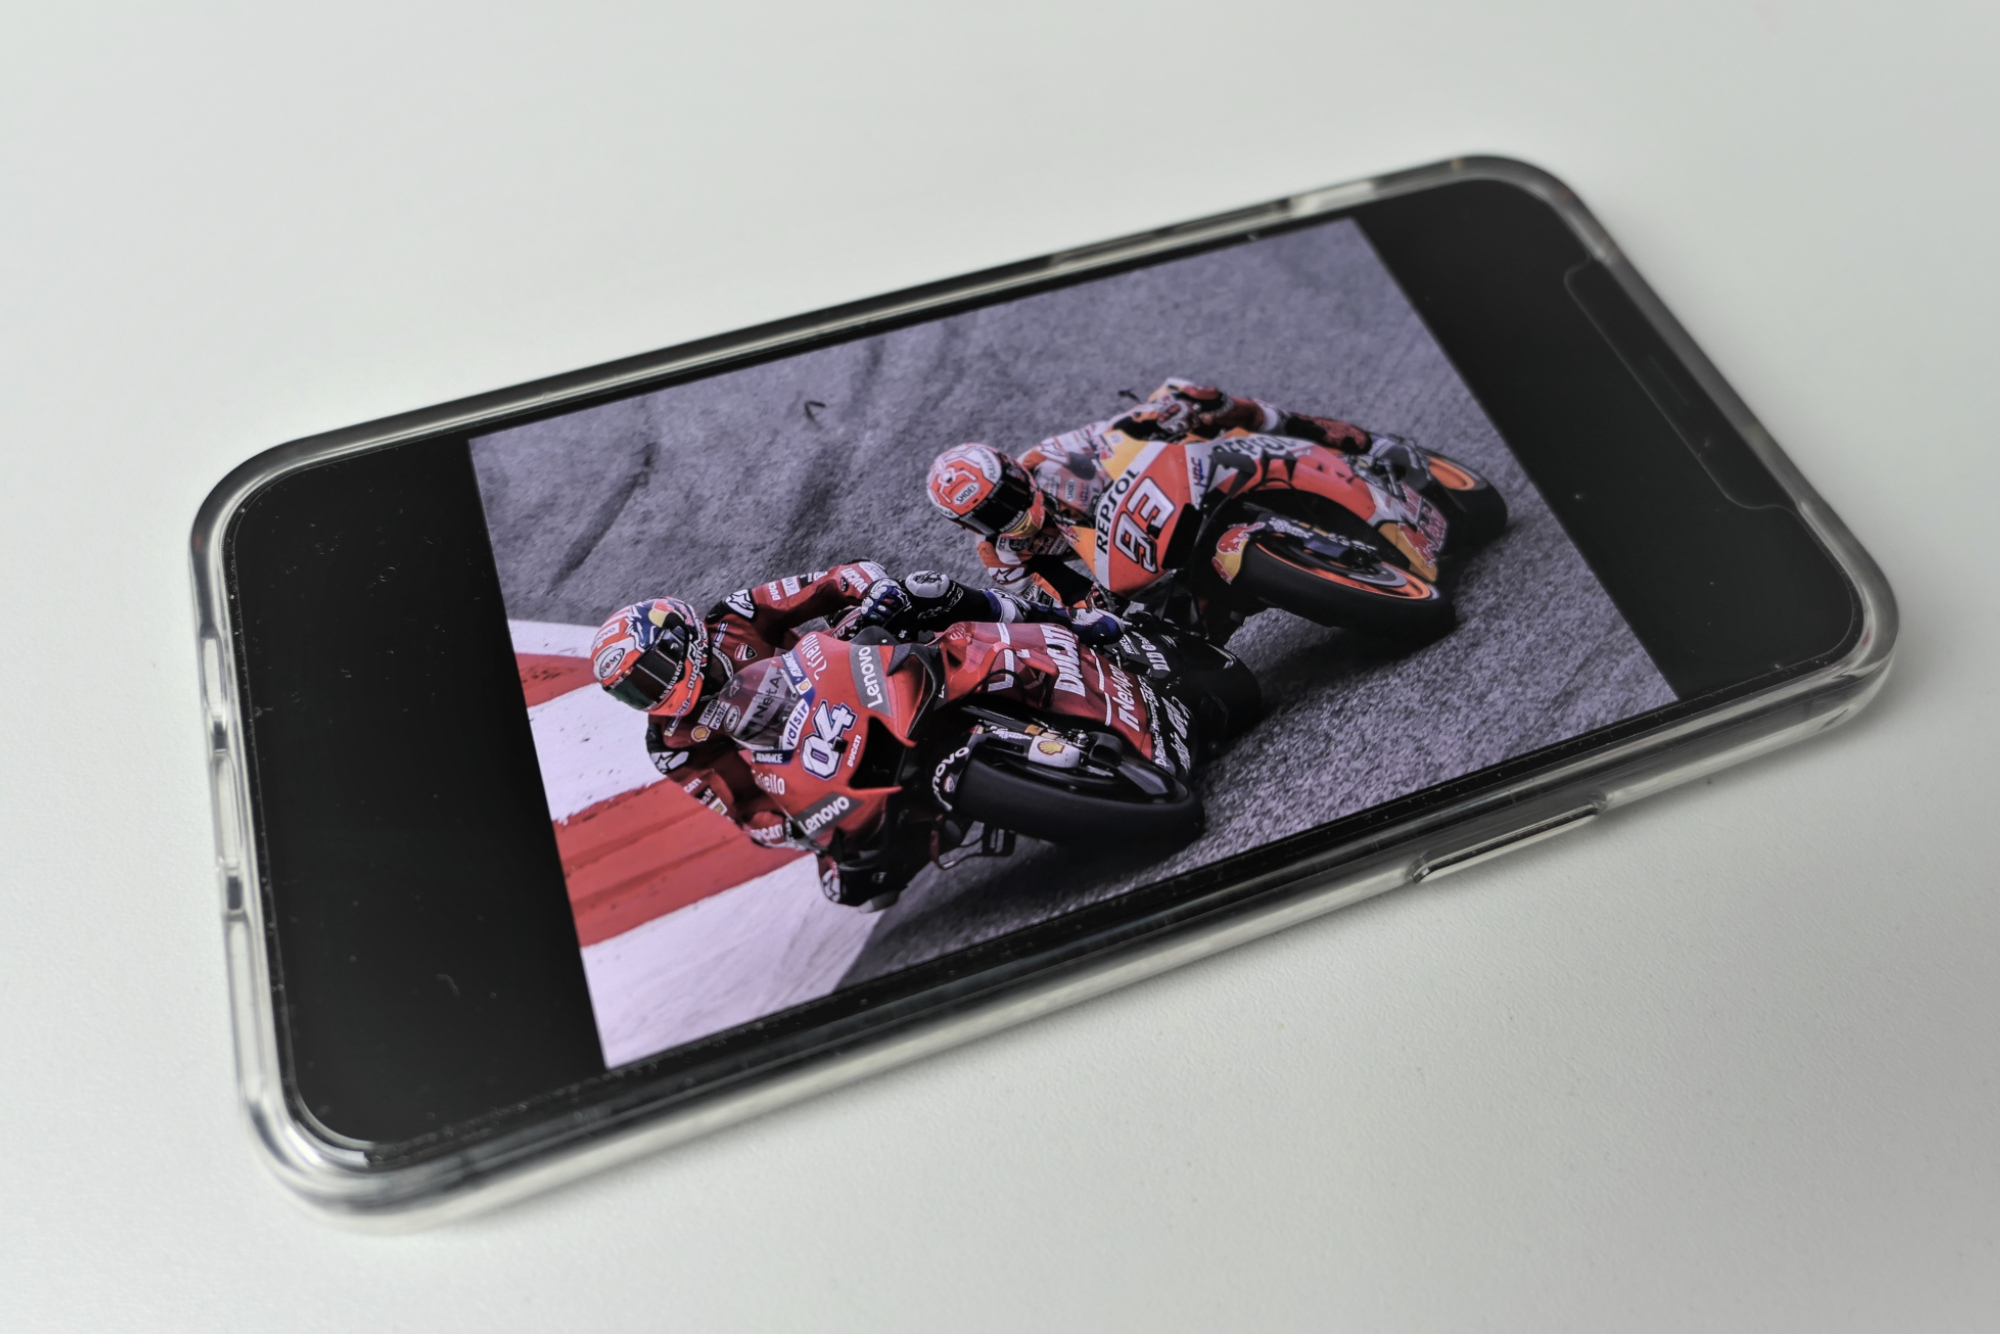 Why Ducati's GP20 is the opposite of a smart phone